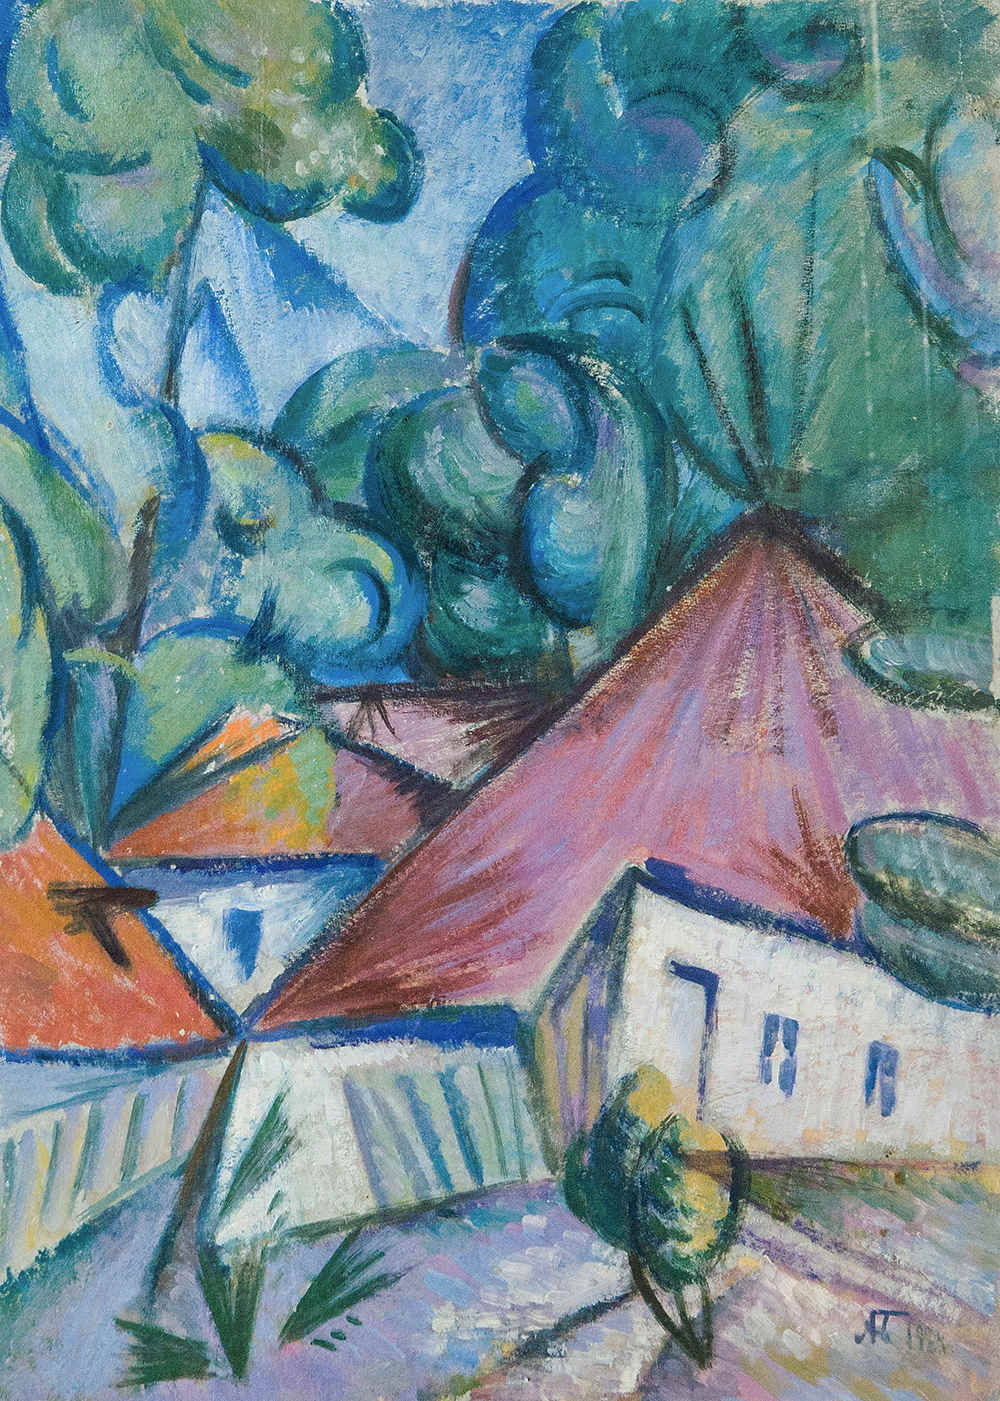 Landscape with houses.